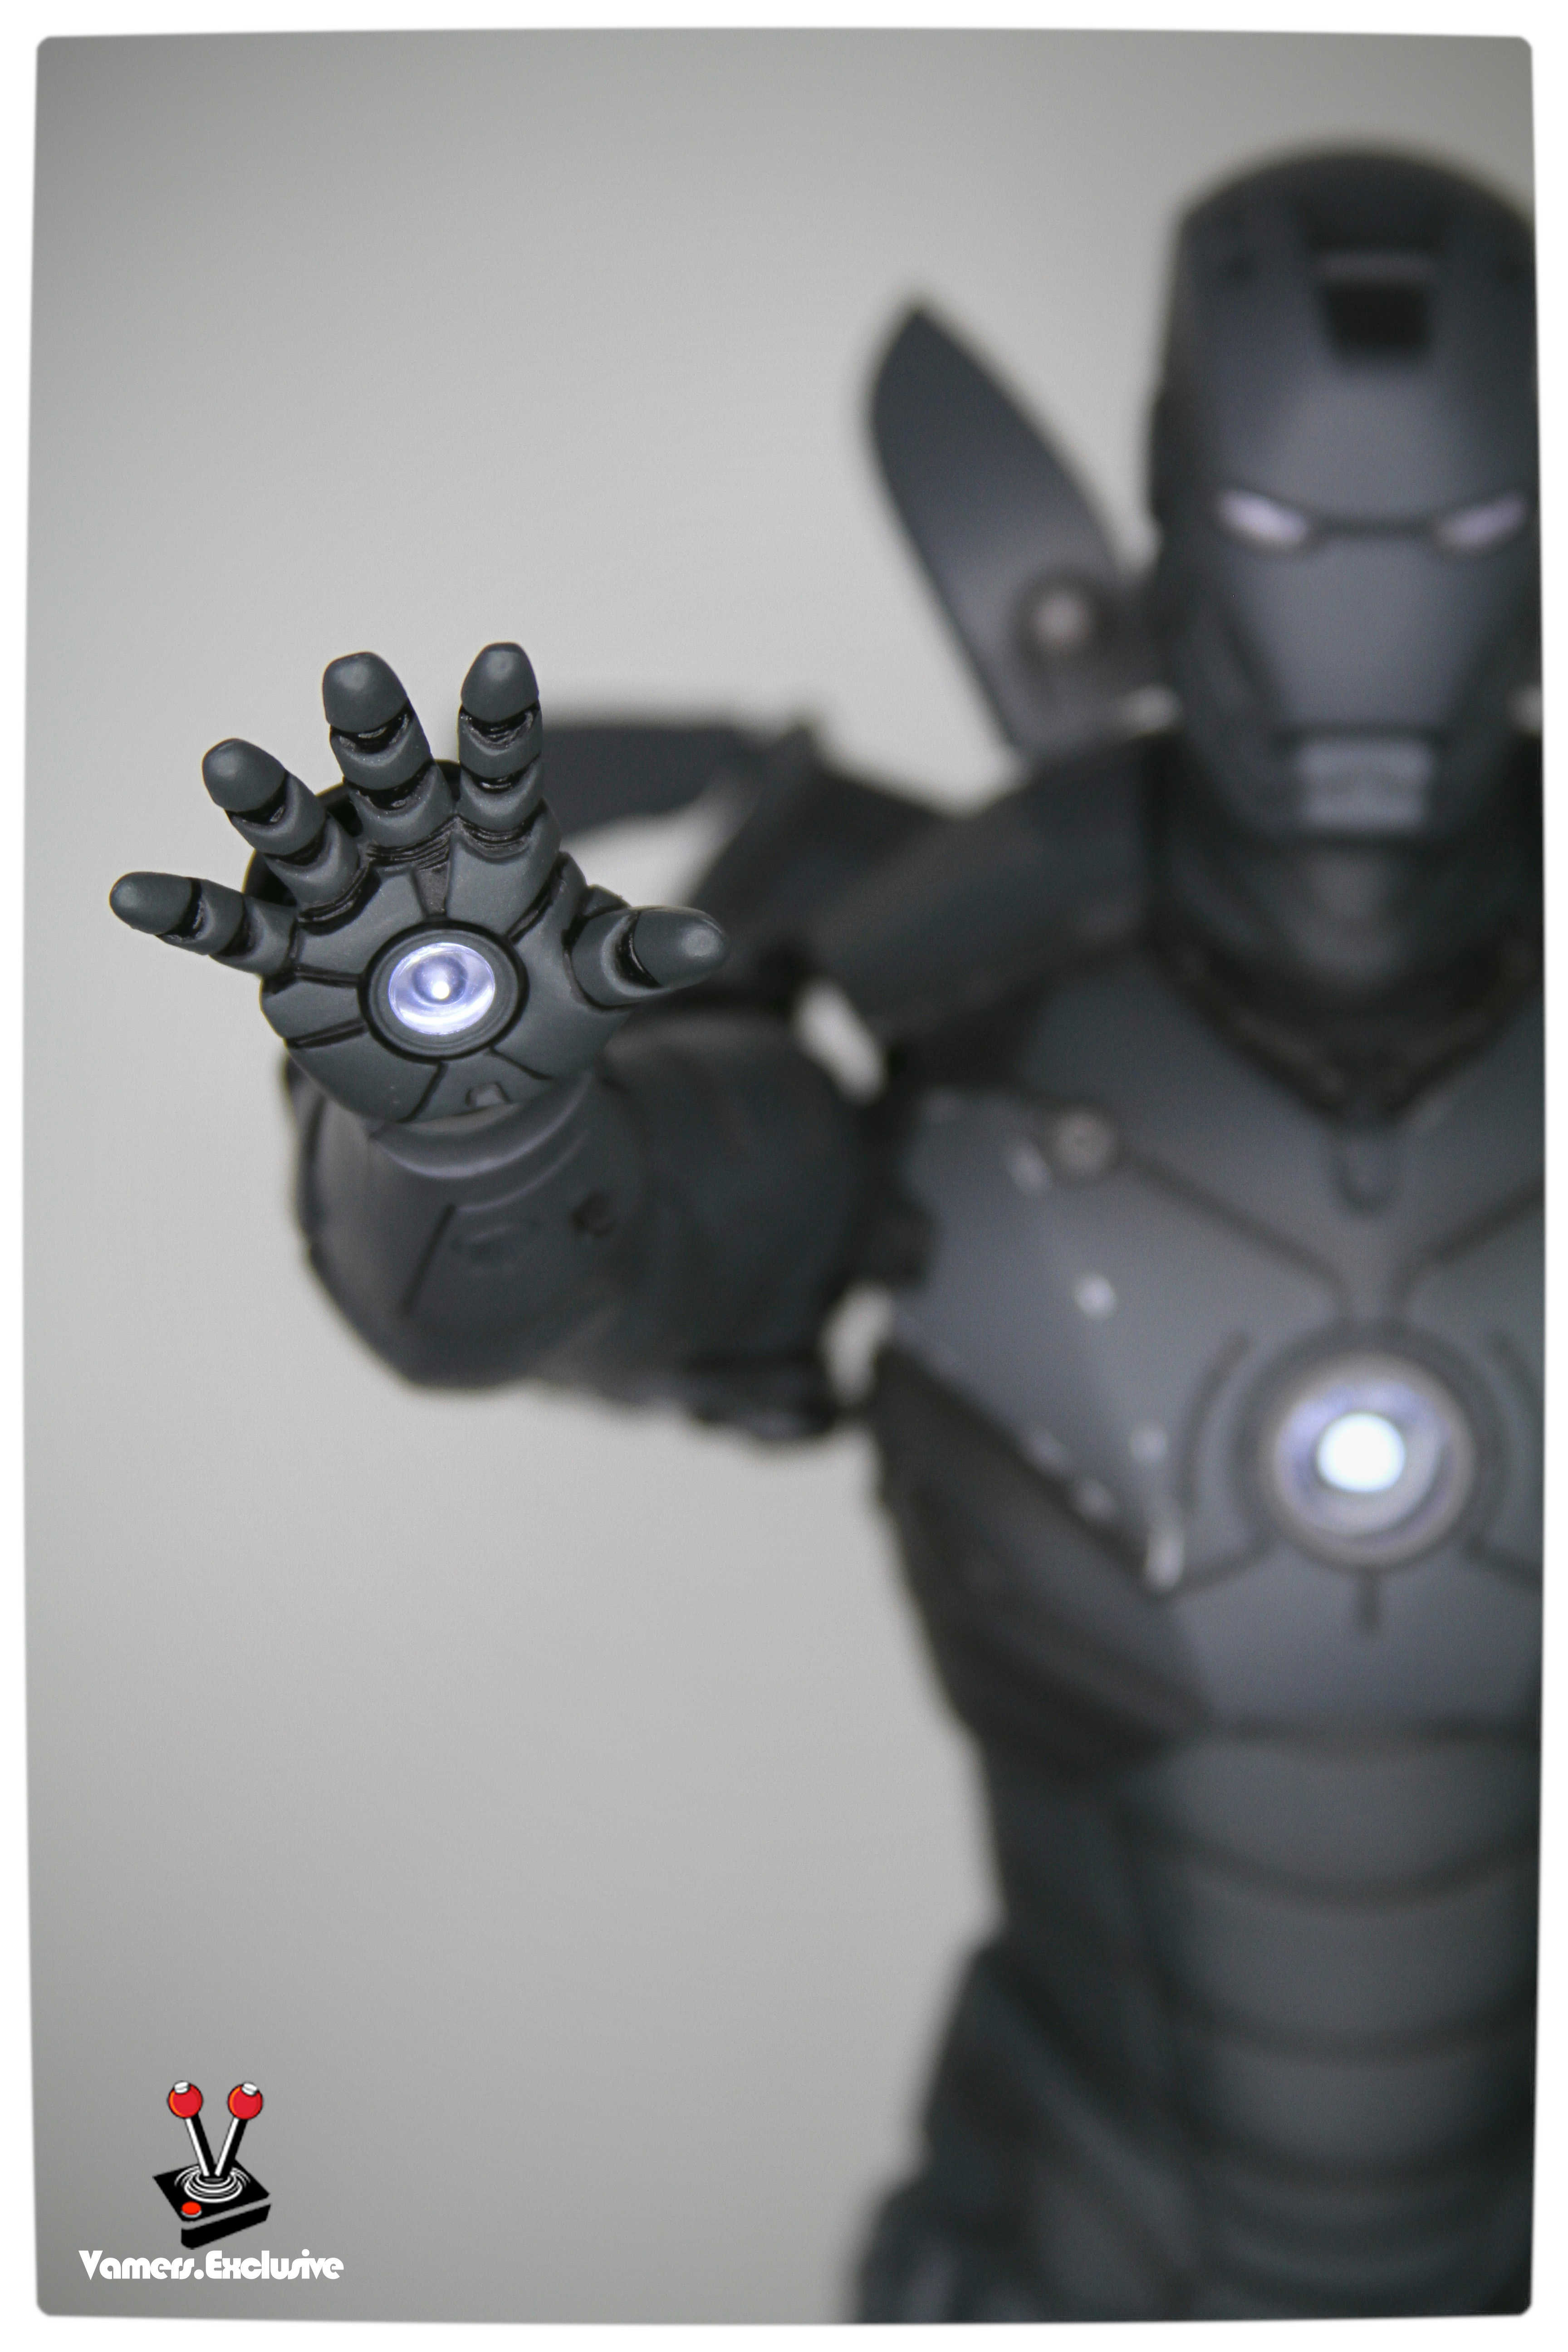 Vamers - Hot Toys - Limited Edition Collectible - Iron Man Mark III - SIlly Thing's TK Edition - MMS101 - Flaps Extended and Arc Reactor Engaged - Right Hand Close Up